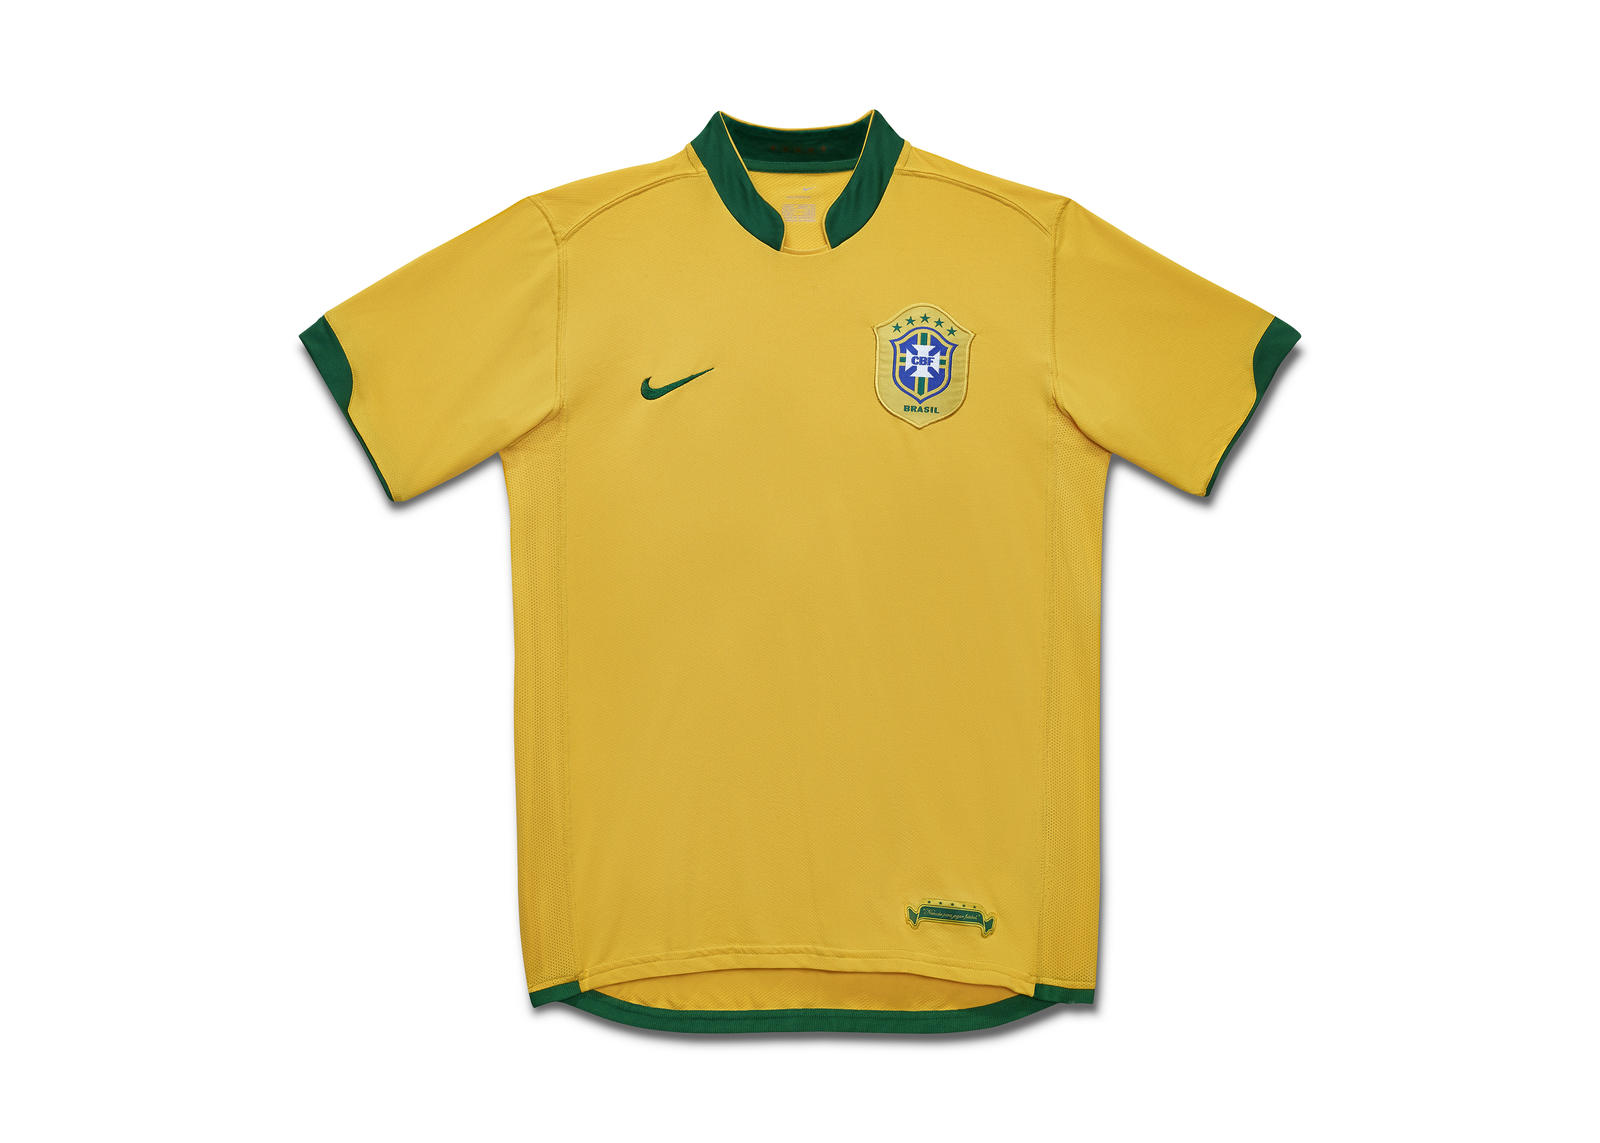 A Retrospective of Brasil's Yellow Jersey 4